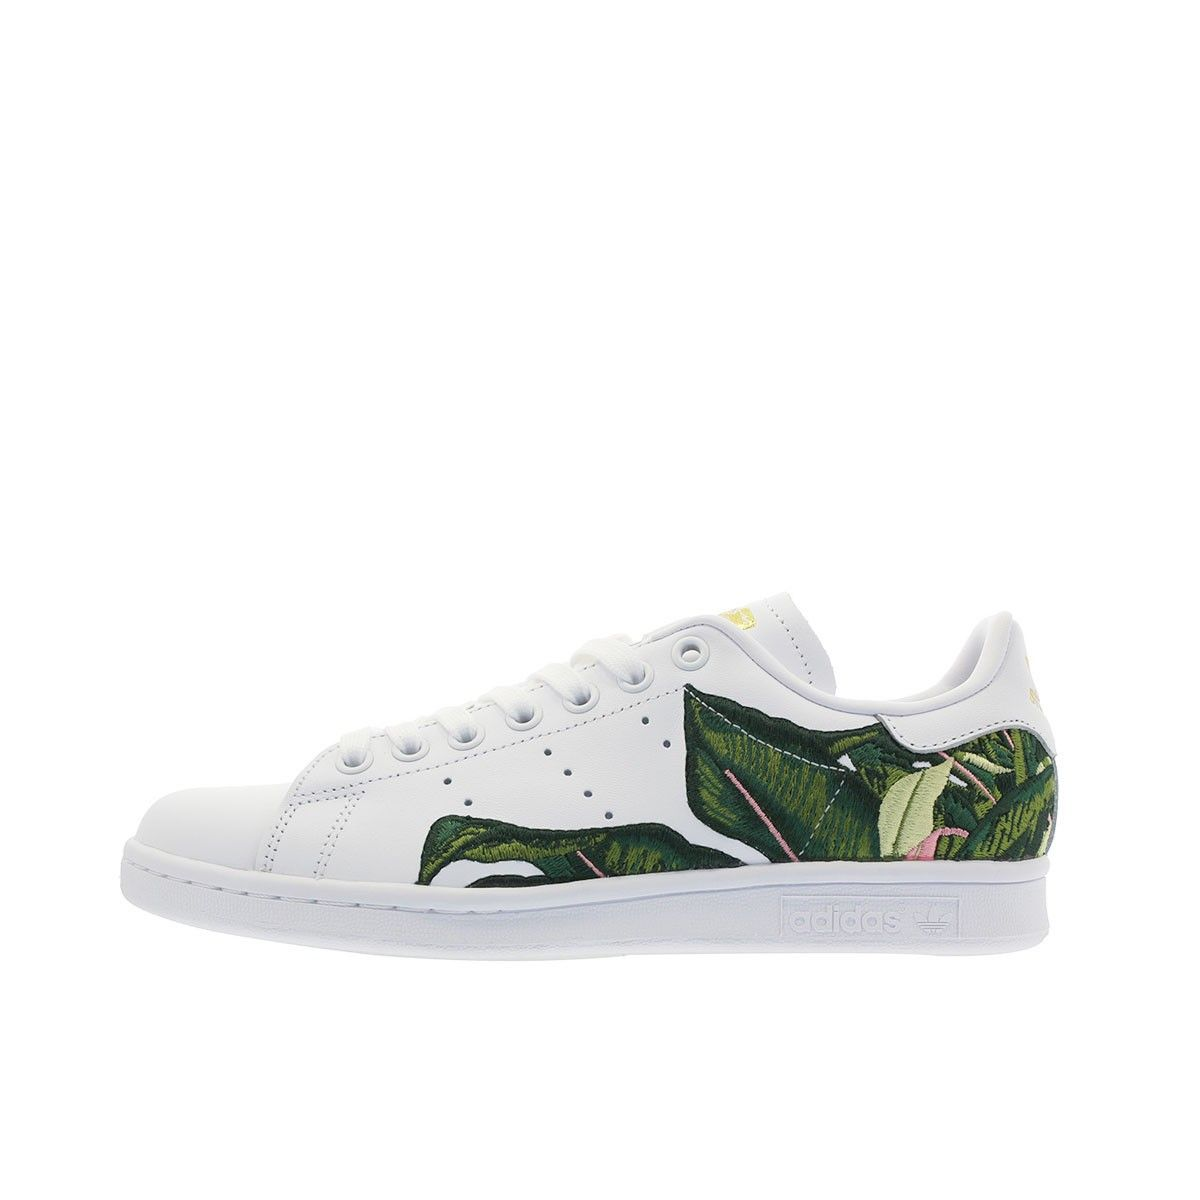 sneakers for cheap 7337e 05e72 Adidas Originals Basket adidas Originals Stan Smith - B28012. Loading zoom